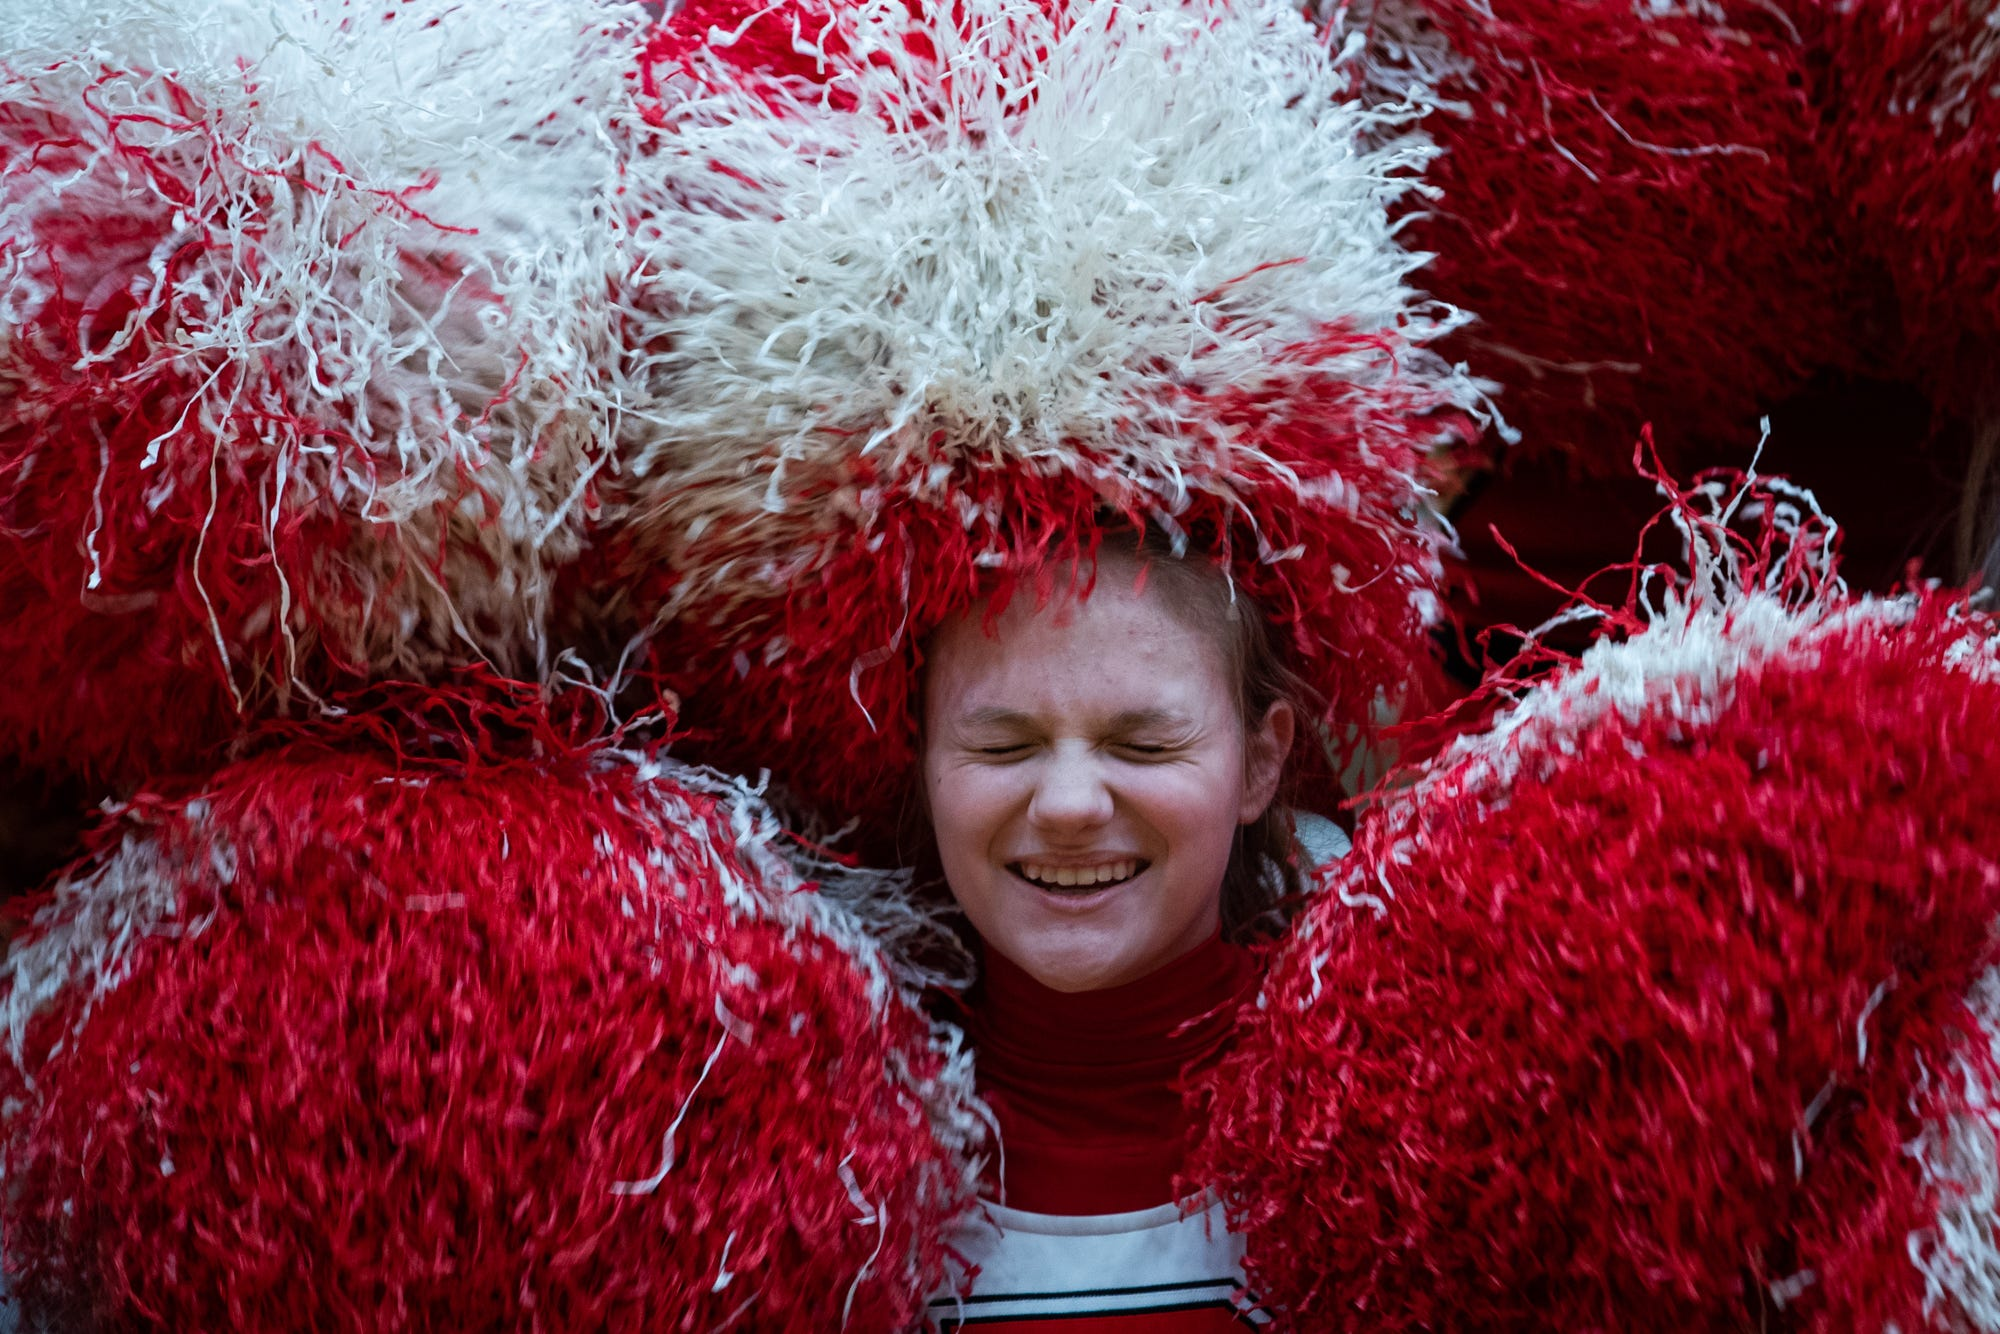 Taylor Mikesell, a freshman cheerleader at Richmond High School, giggles while making pompom letters with the rest of the cheer team before the varsity boys basketball game against the Kokomo Wildkats inside the Tiernan Center gymnasium in Richmond, Ind., on Friday, Feb. 14, 2020.